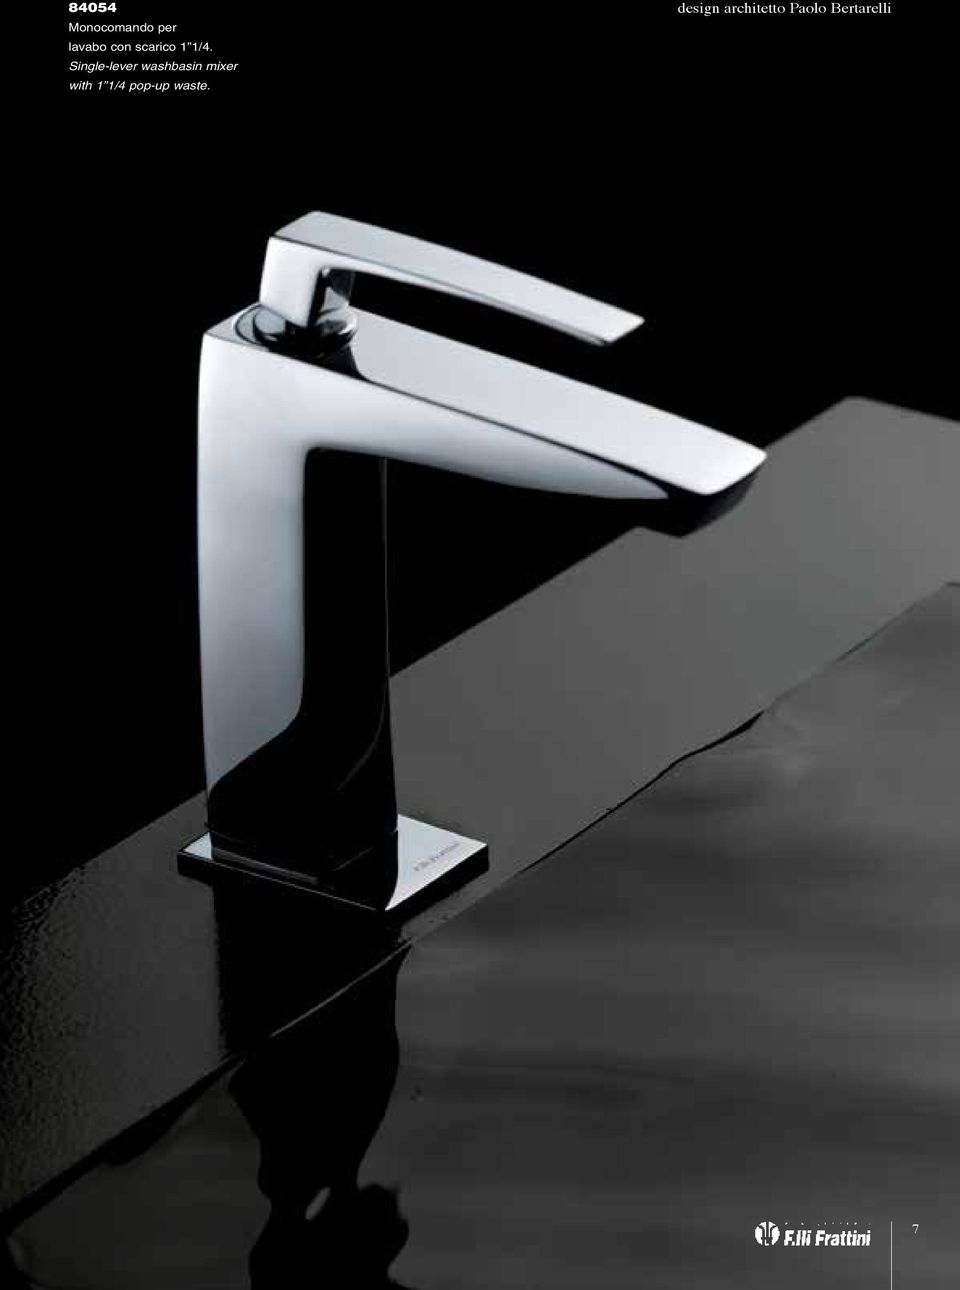 Single-lever washbasin mixer with